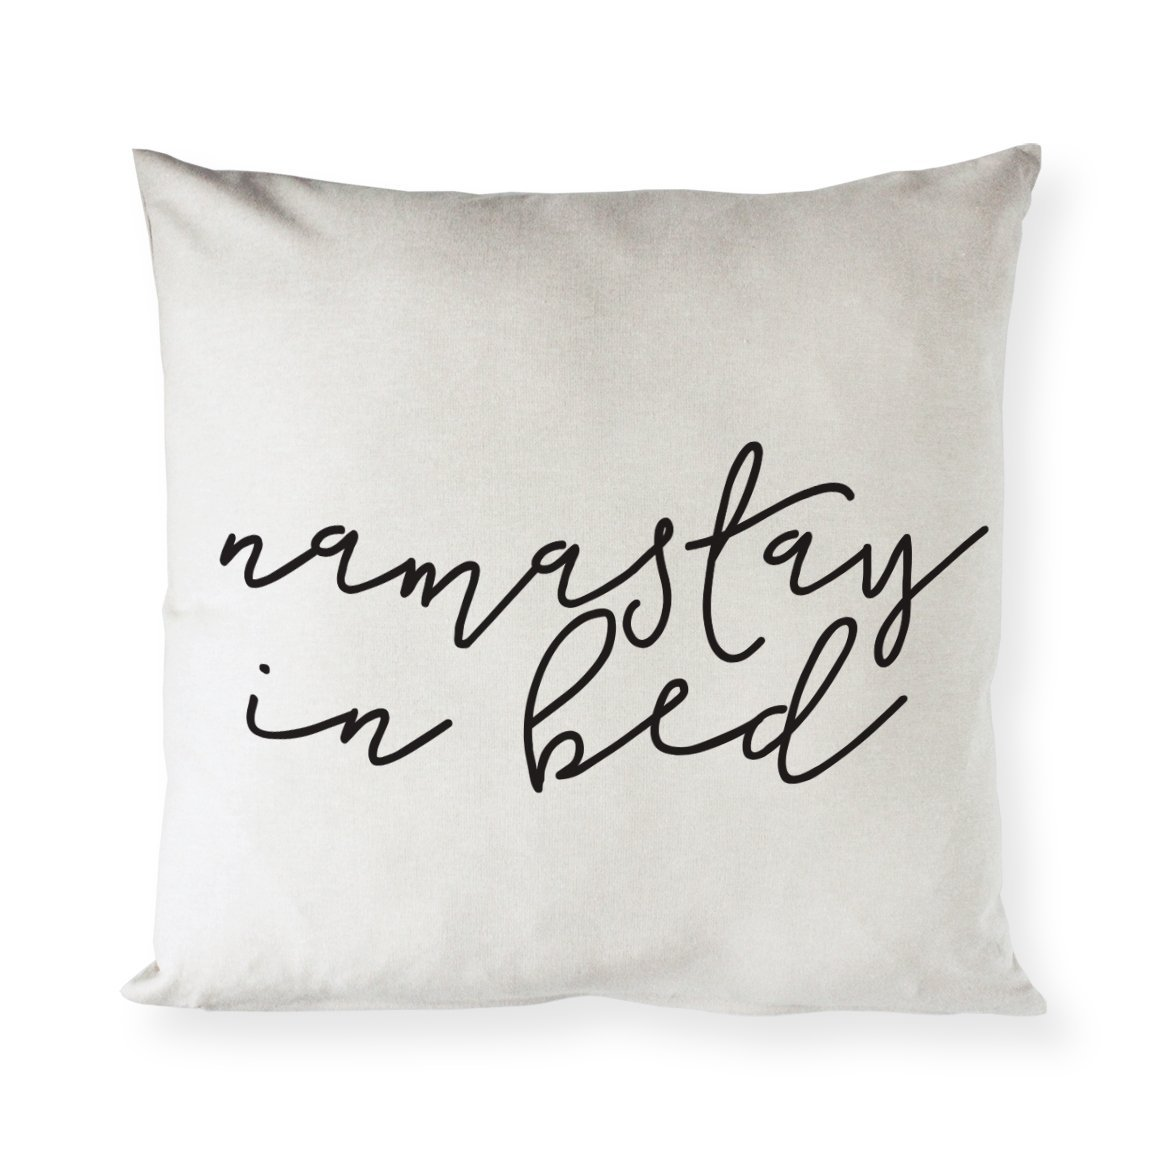 The Cotton & Canvas Co. Namastay in Bed Home Decor Pillow Cover, Pillowcase, Cushion Cover and Decorative Throw Pillow Case (Natural Canvas Color, Not White)